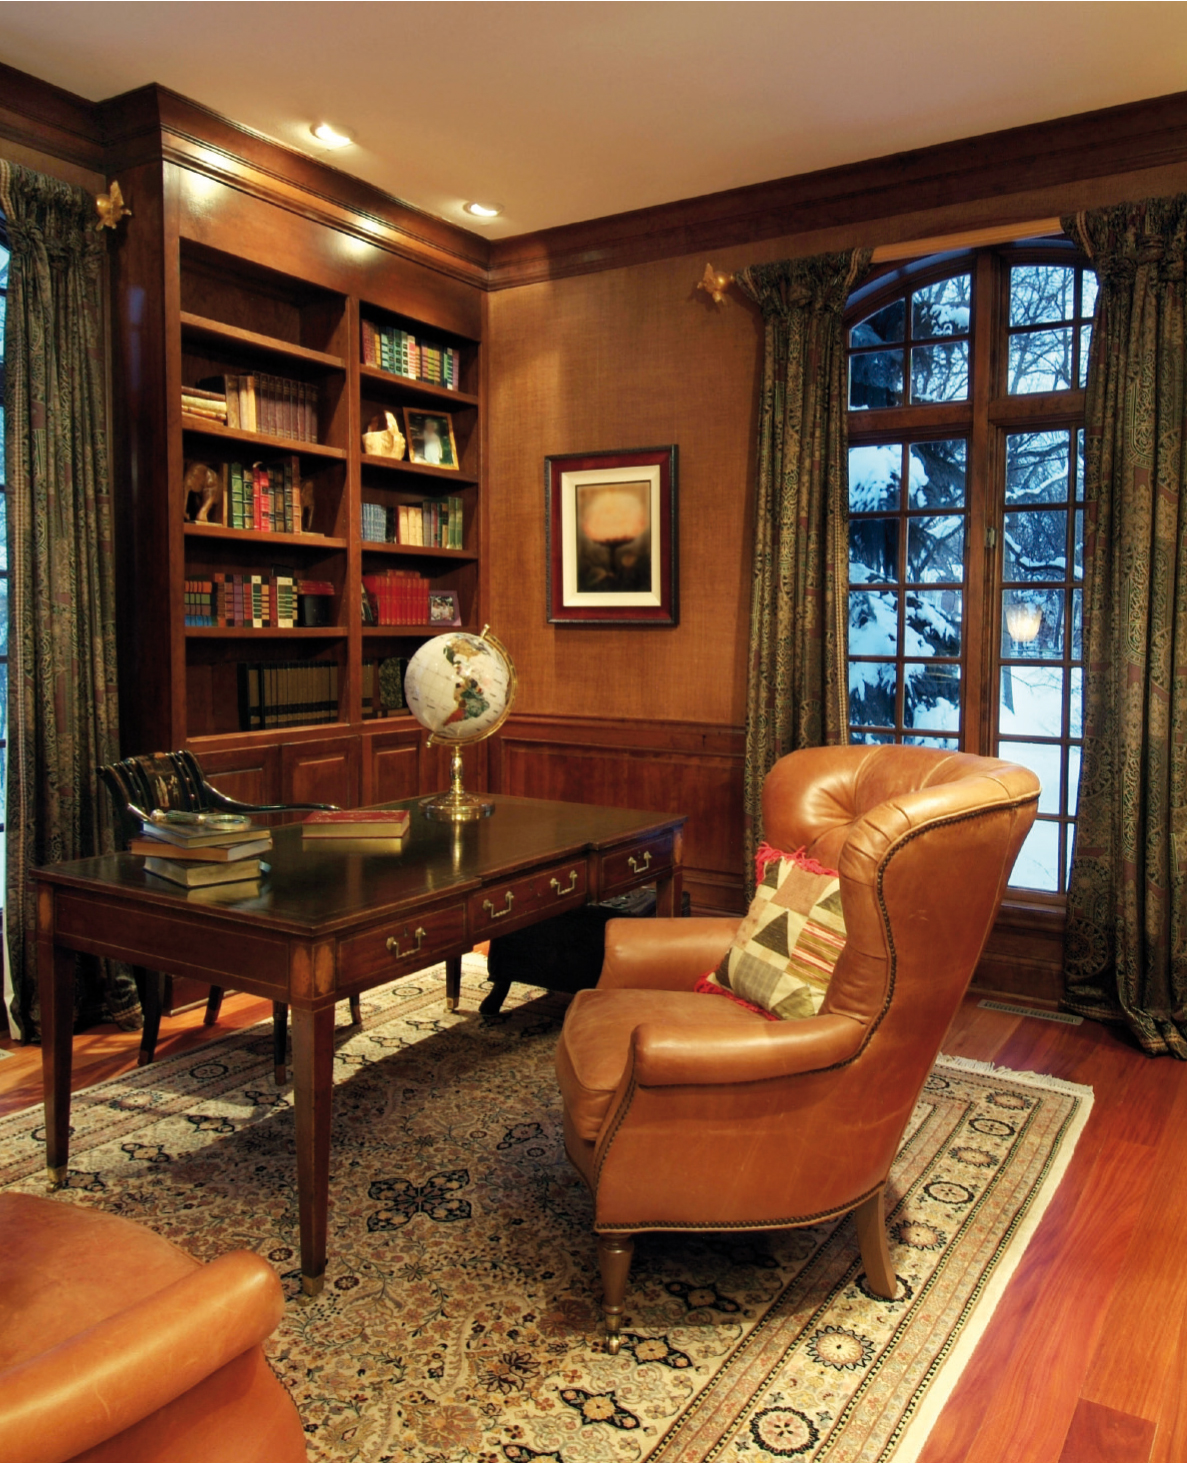 Study Room Color Ideas: The Gentleman's Room: Creating A Masculine Aesthetic